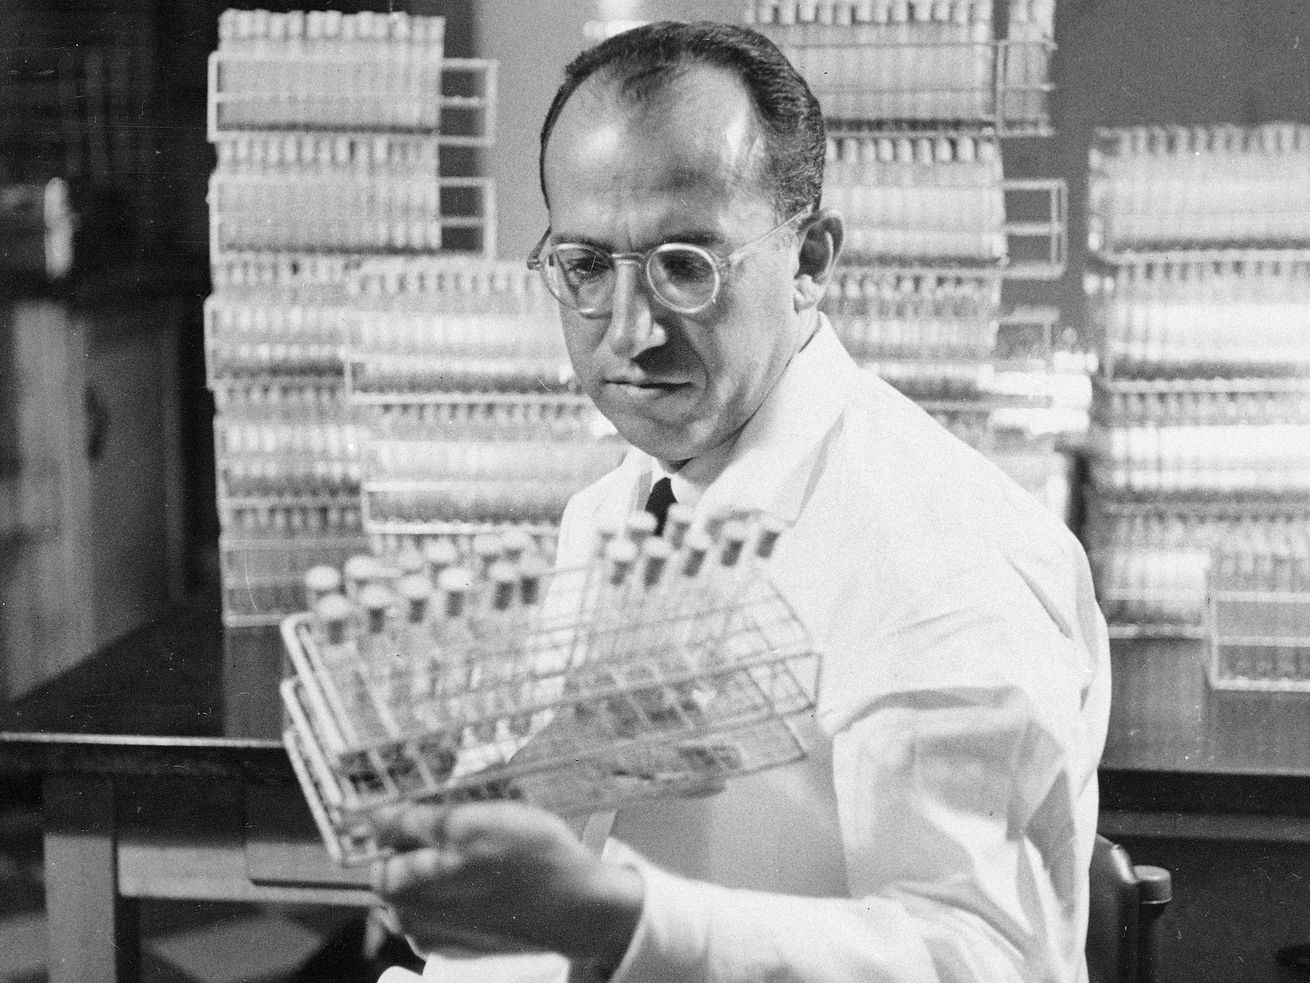 In this Oct. 7, 1954, file photo, Dr. Jonas Salk, developer of the polio vaccine, holds a rack of test tubes in his lab in Pittsburgh.